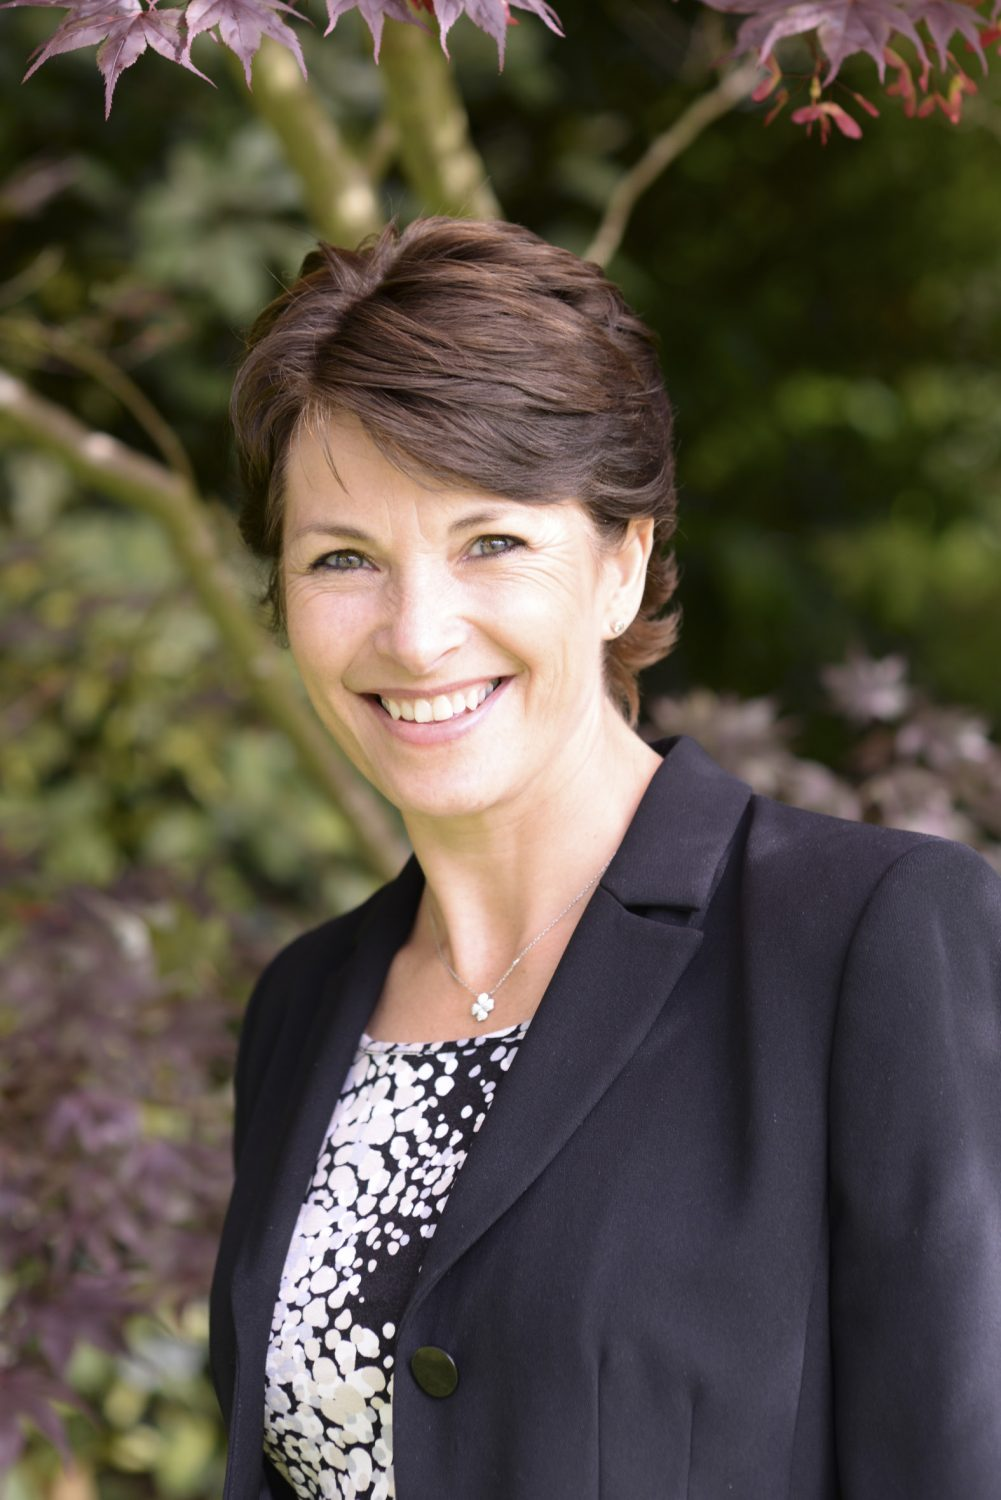 Tracey Fantham, Headteacher at Manor House School